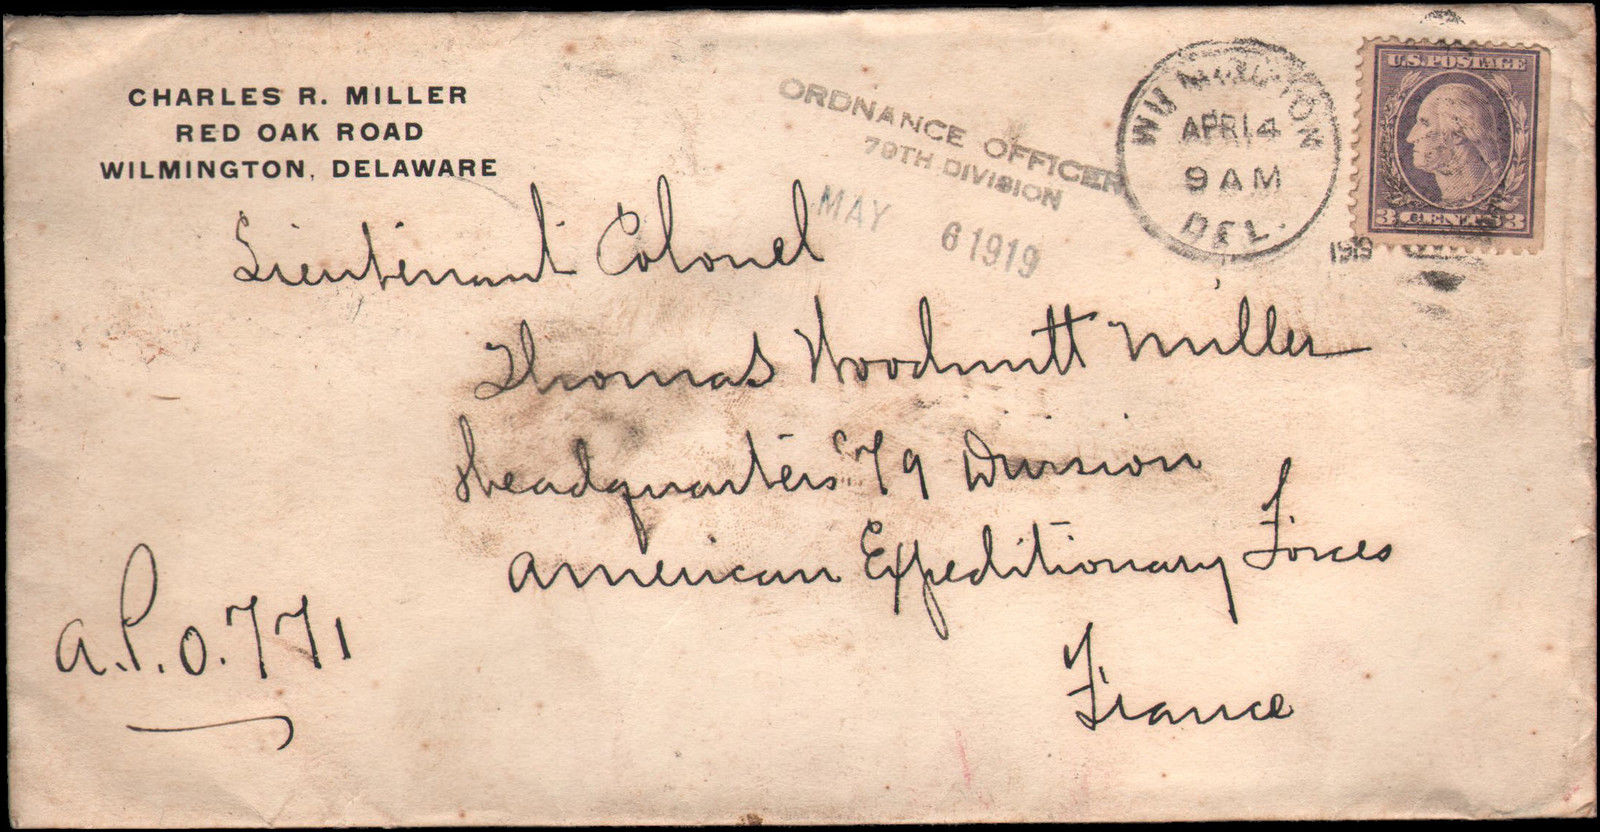 Hhomas W. Miller Lieutenant Colonel 79th Division Headquarters envelope May 6 1919